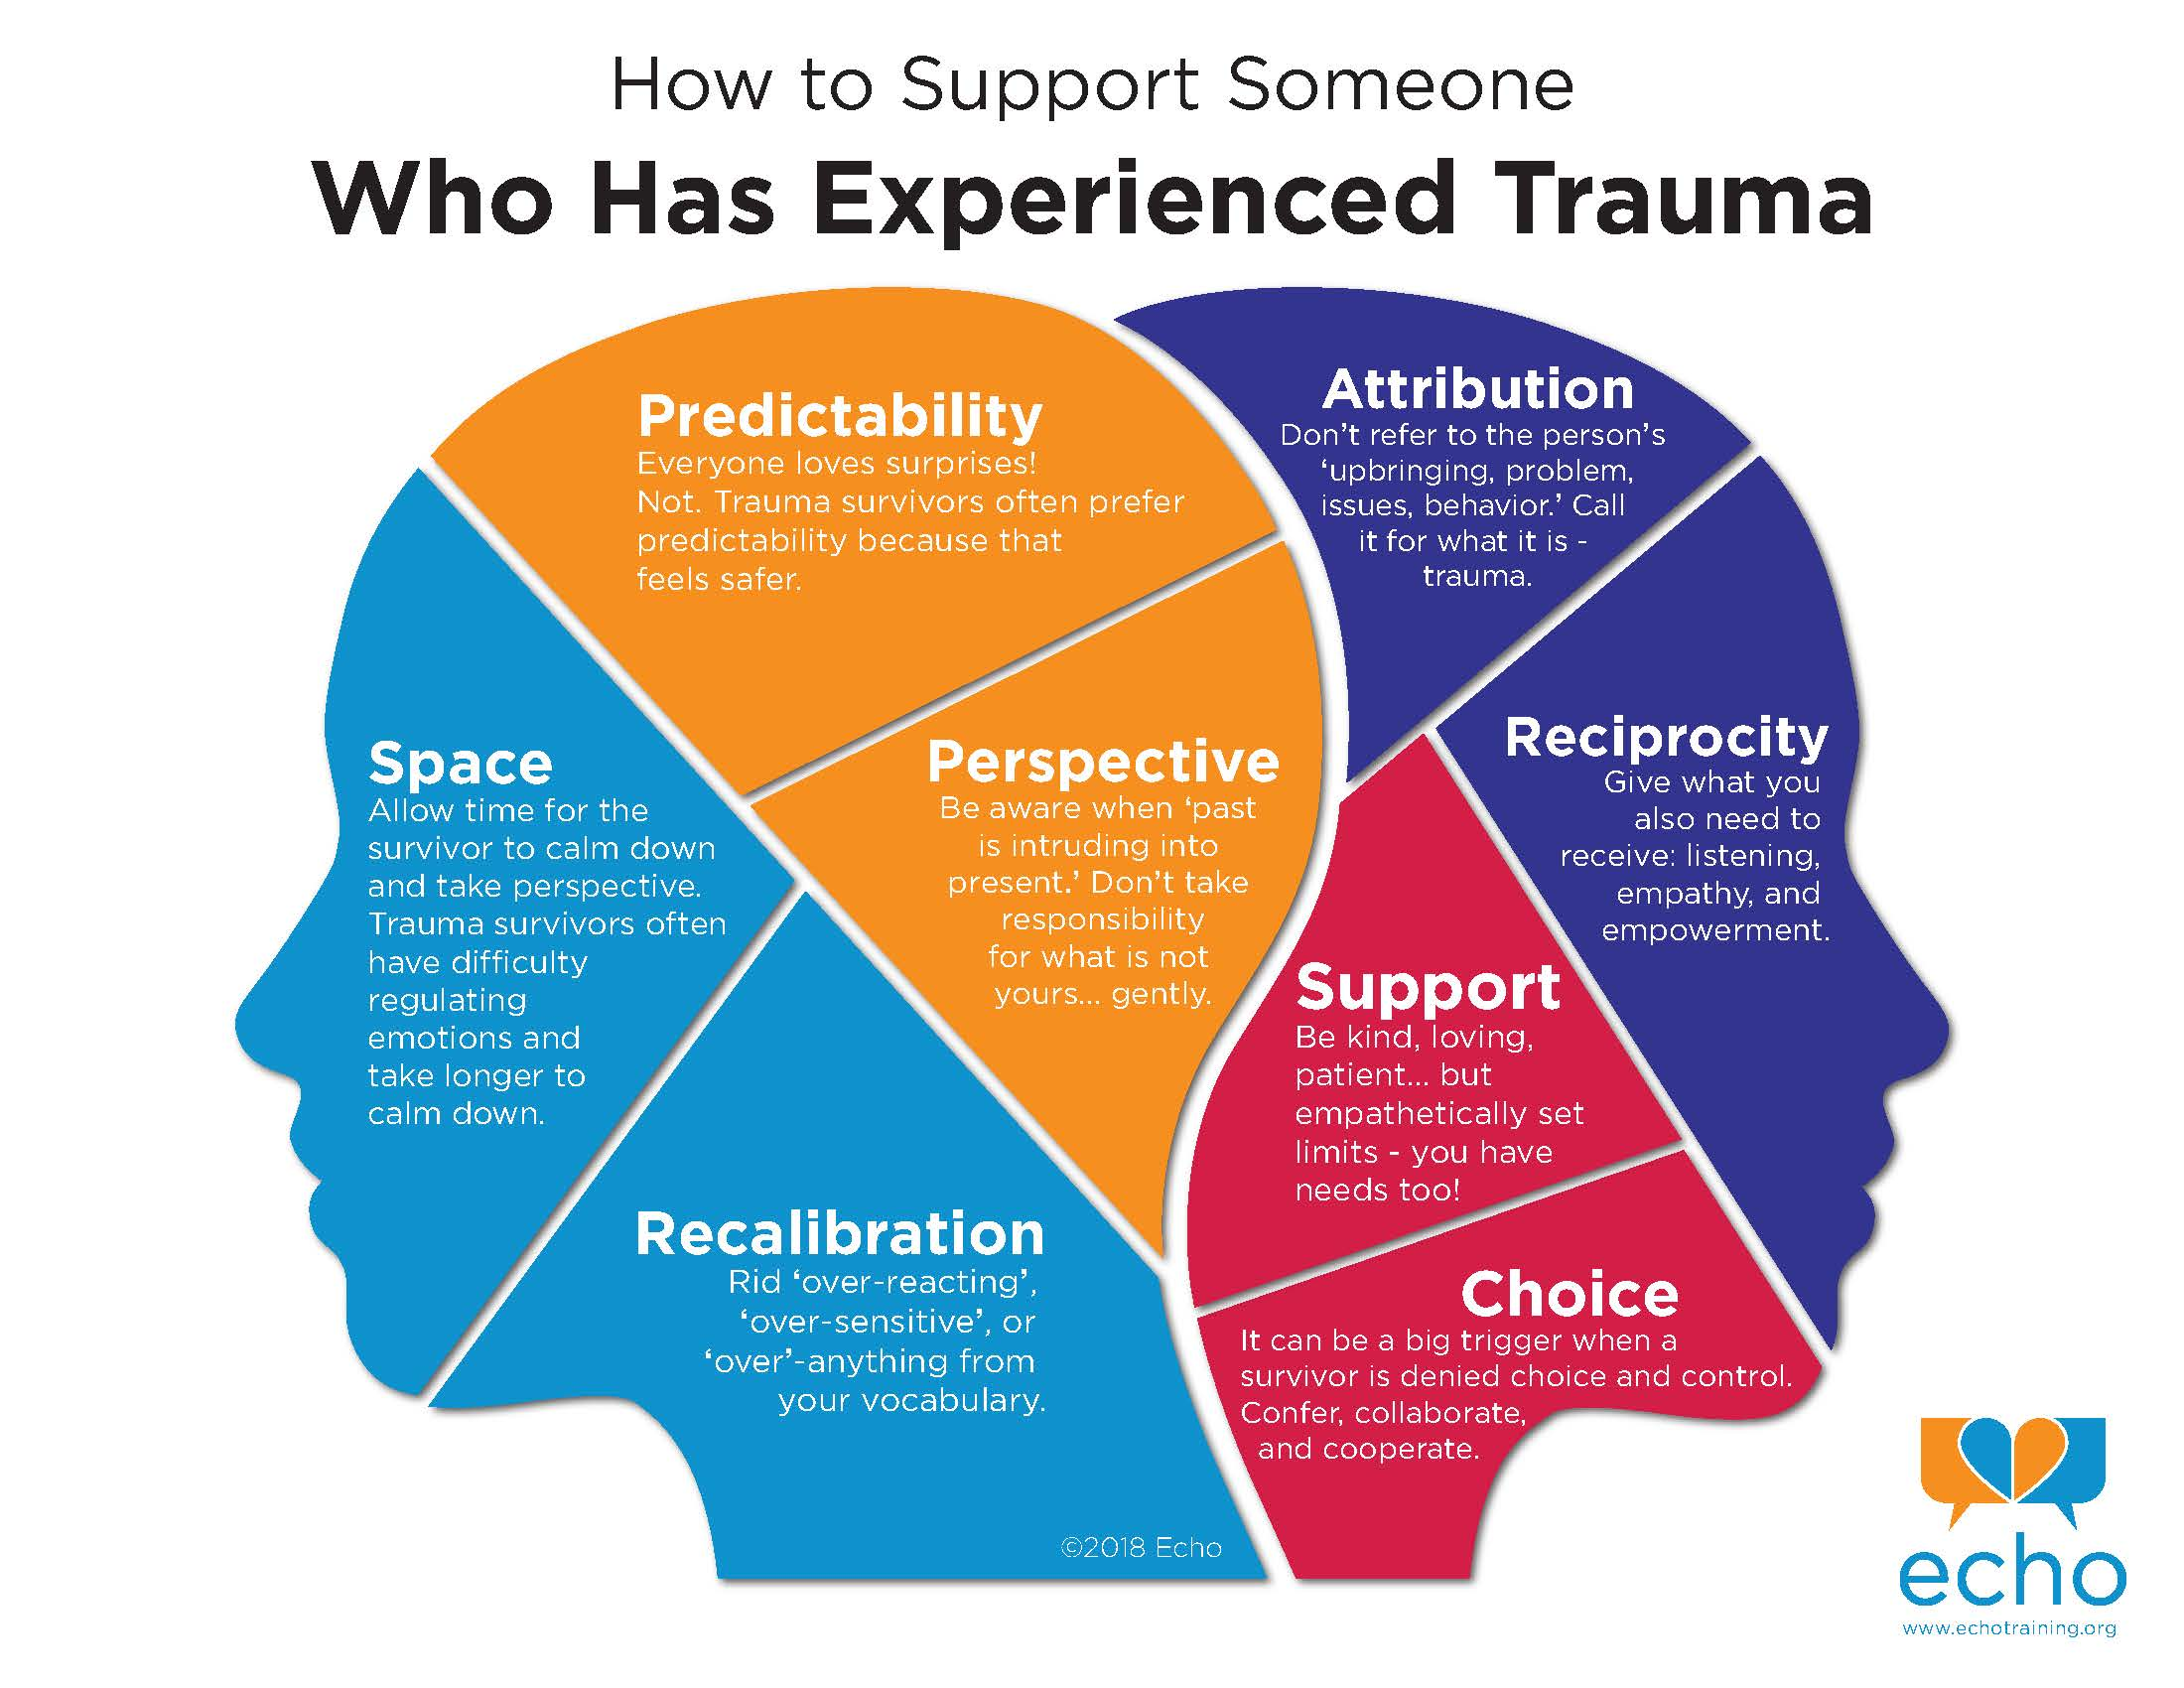 how to support someone like me who has experienced trauma